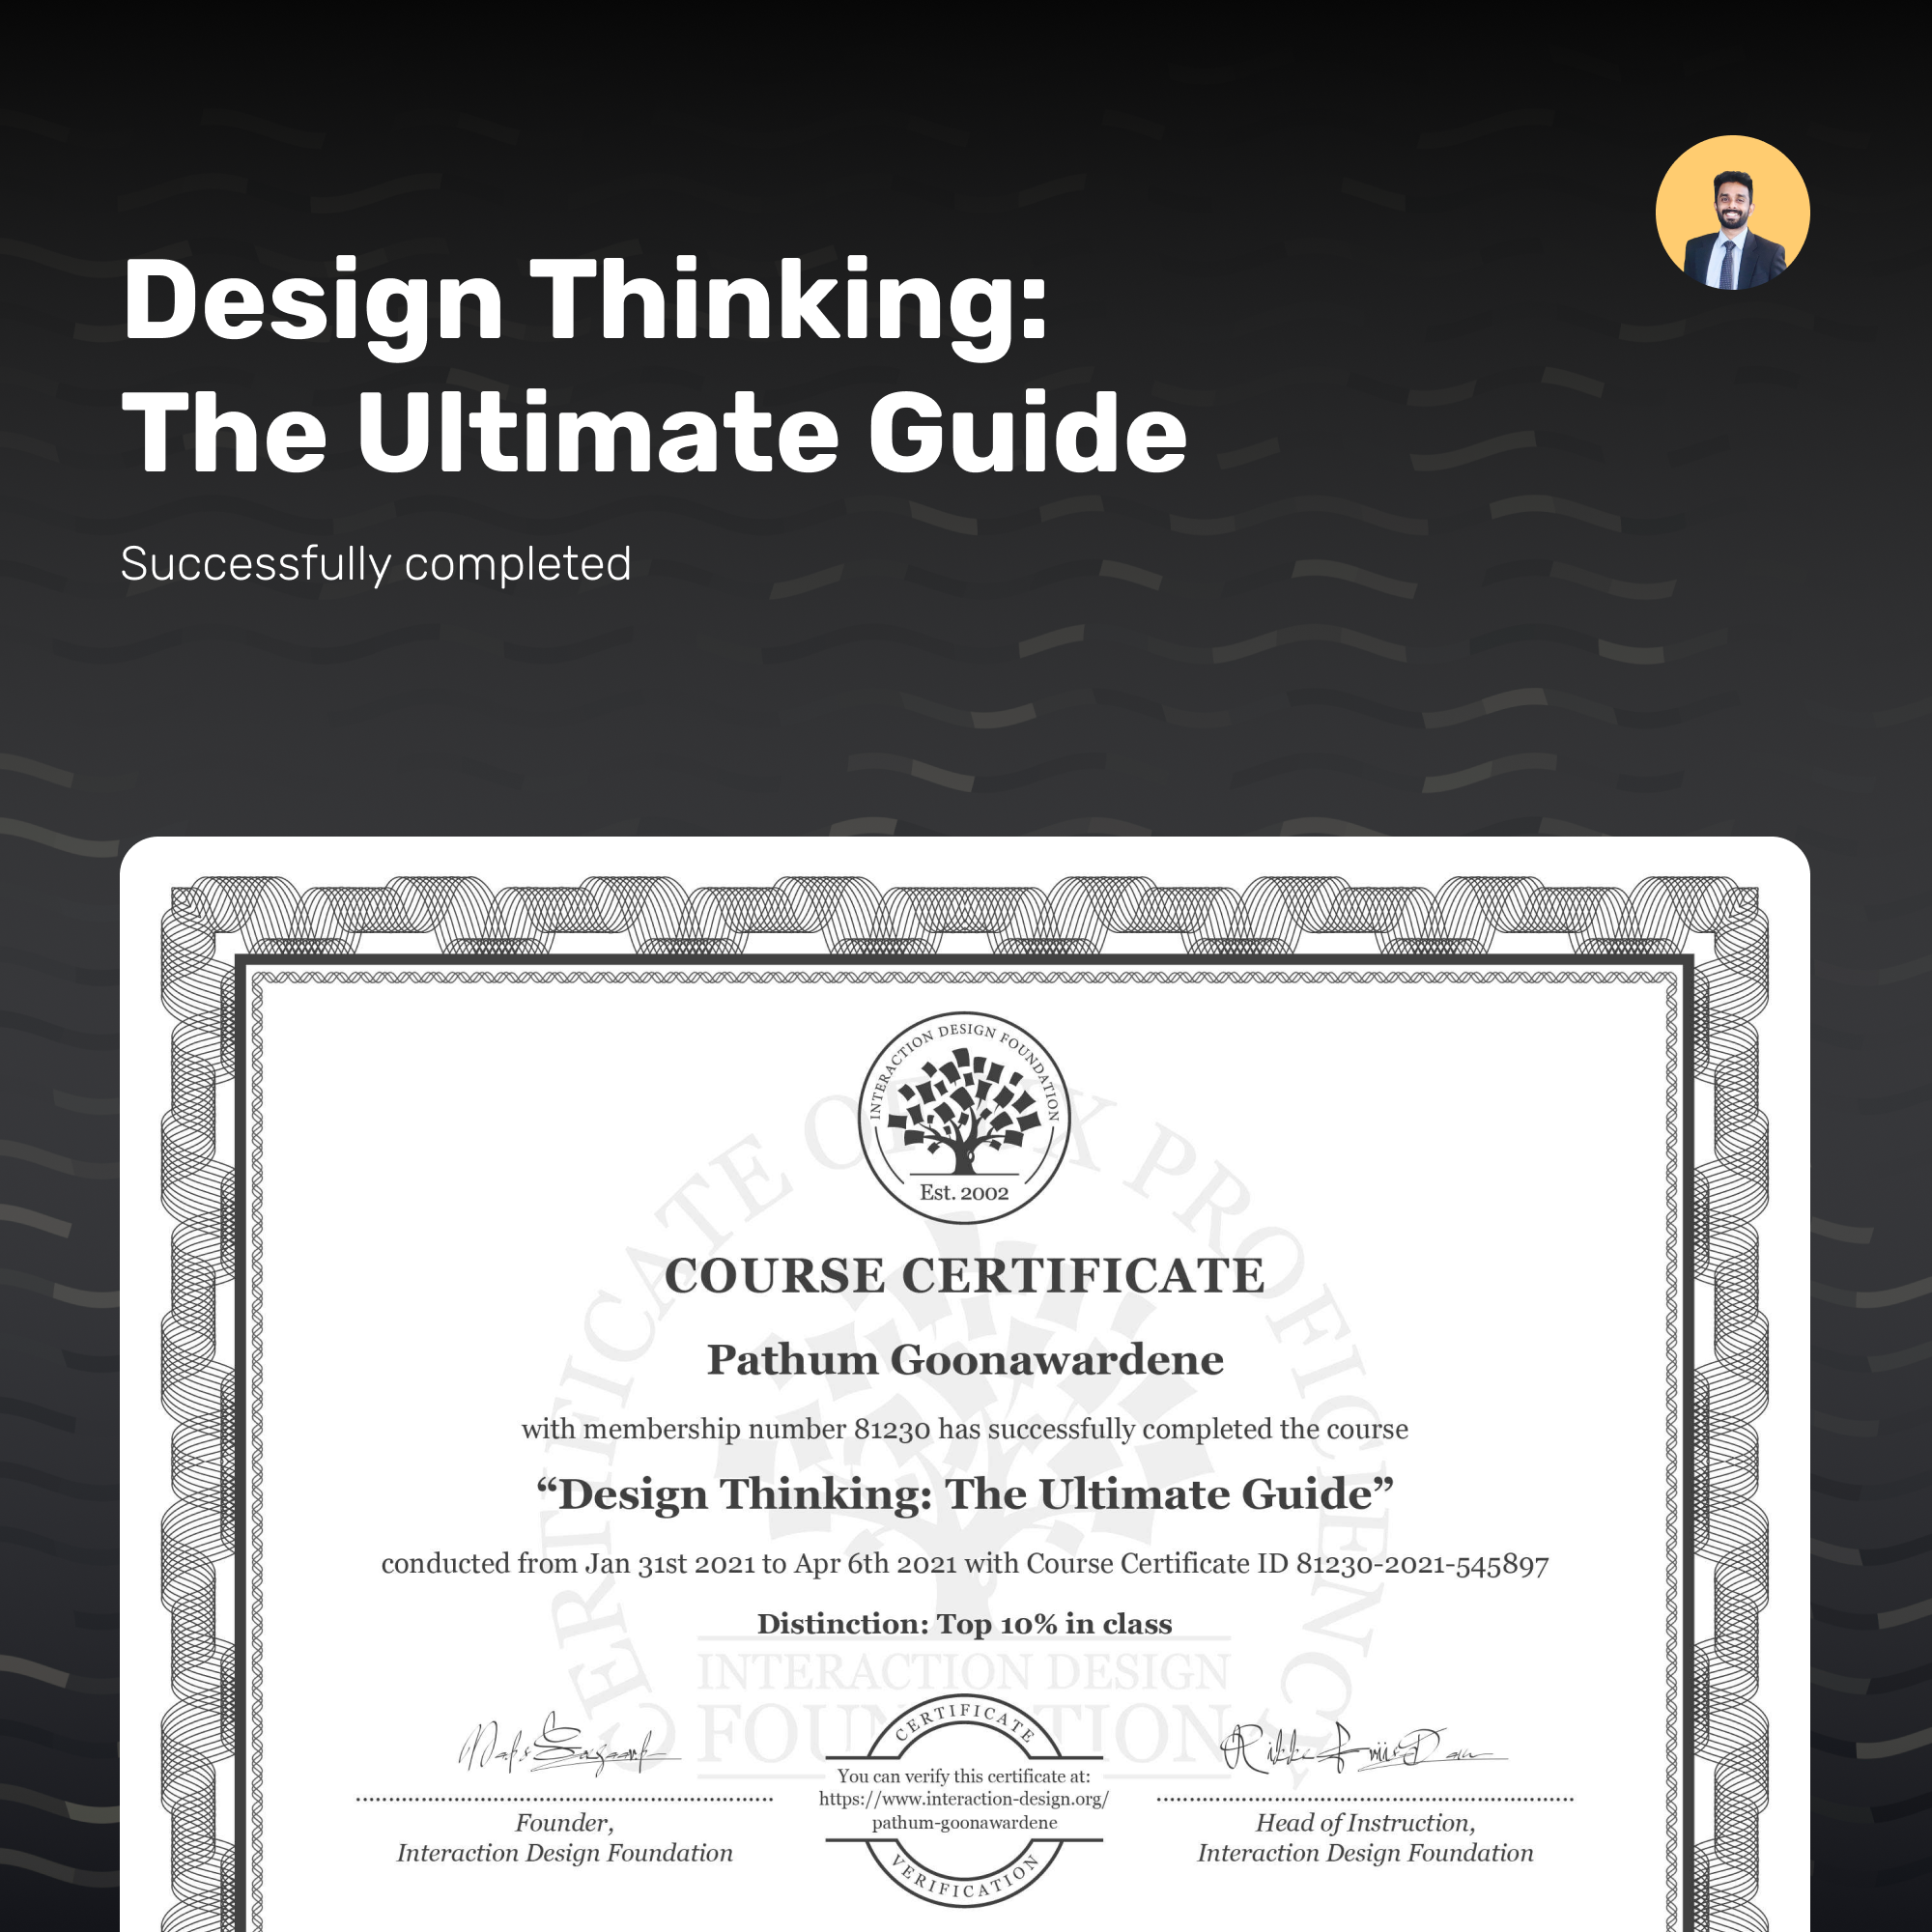 Design Thinking: The Ultimate Guide